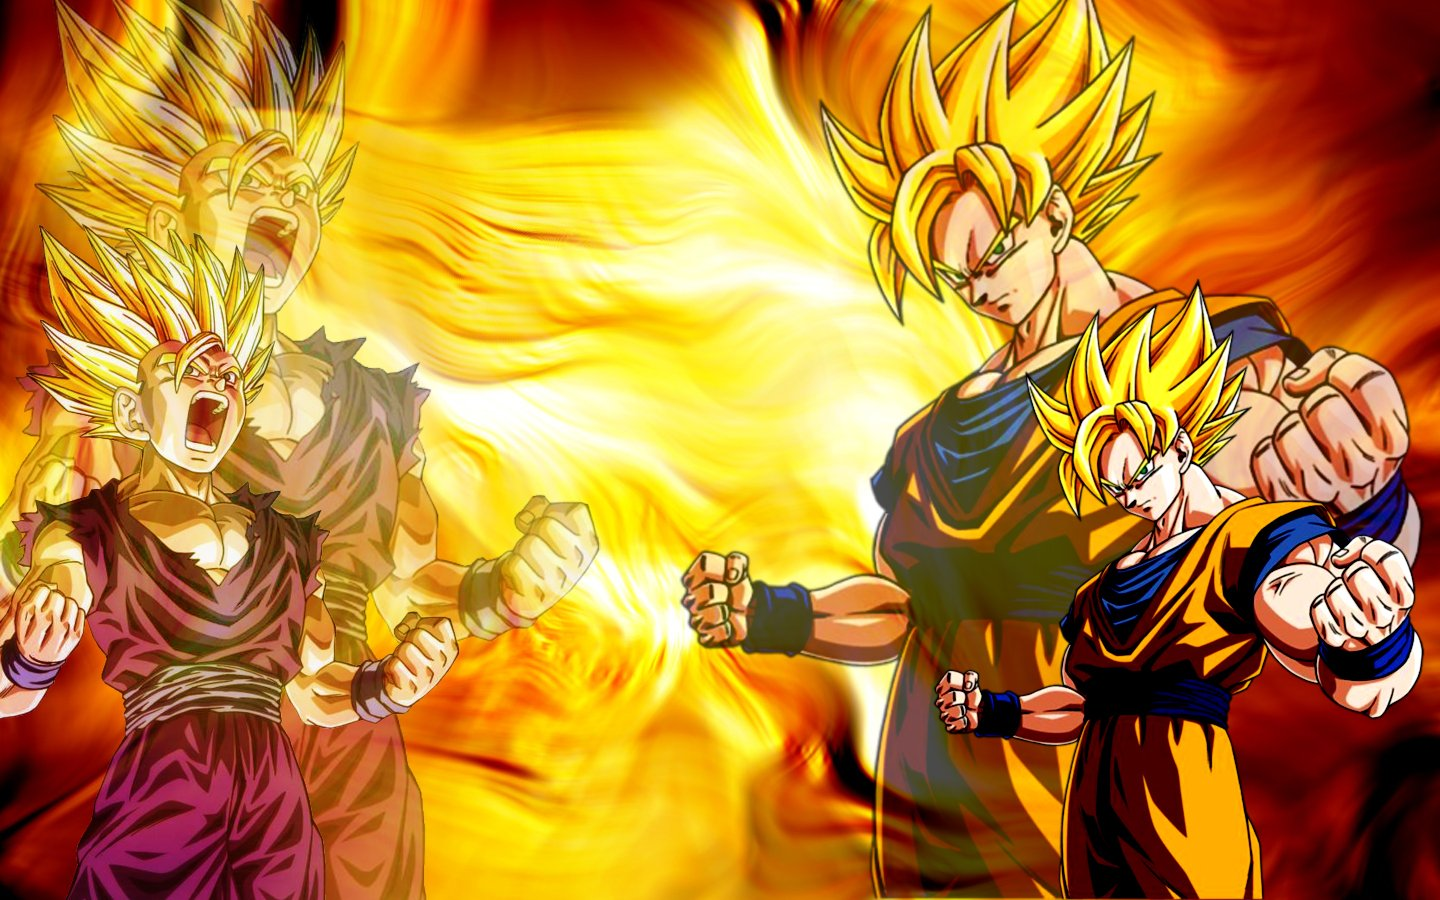 Dragon Ball Z Goku Gohan Wallpaper 1440x900